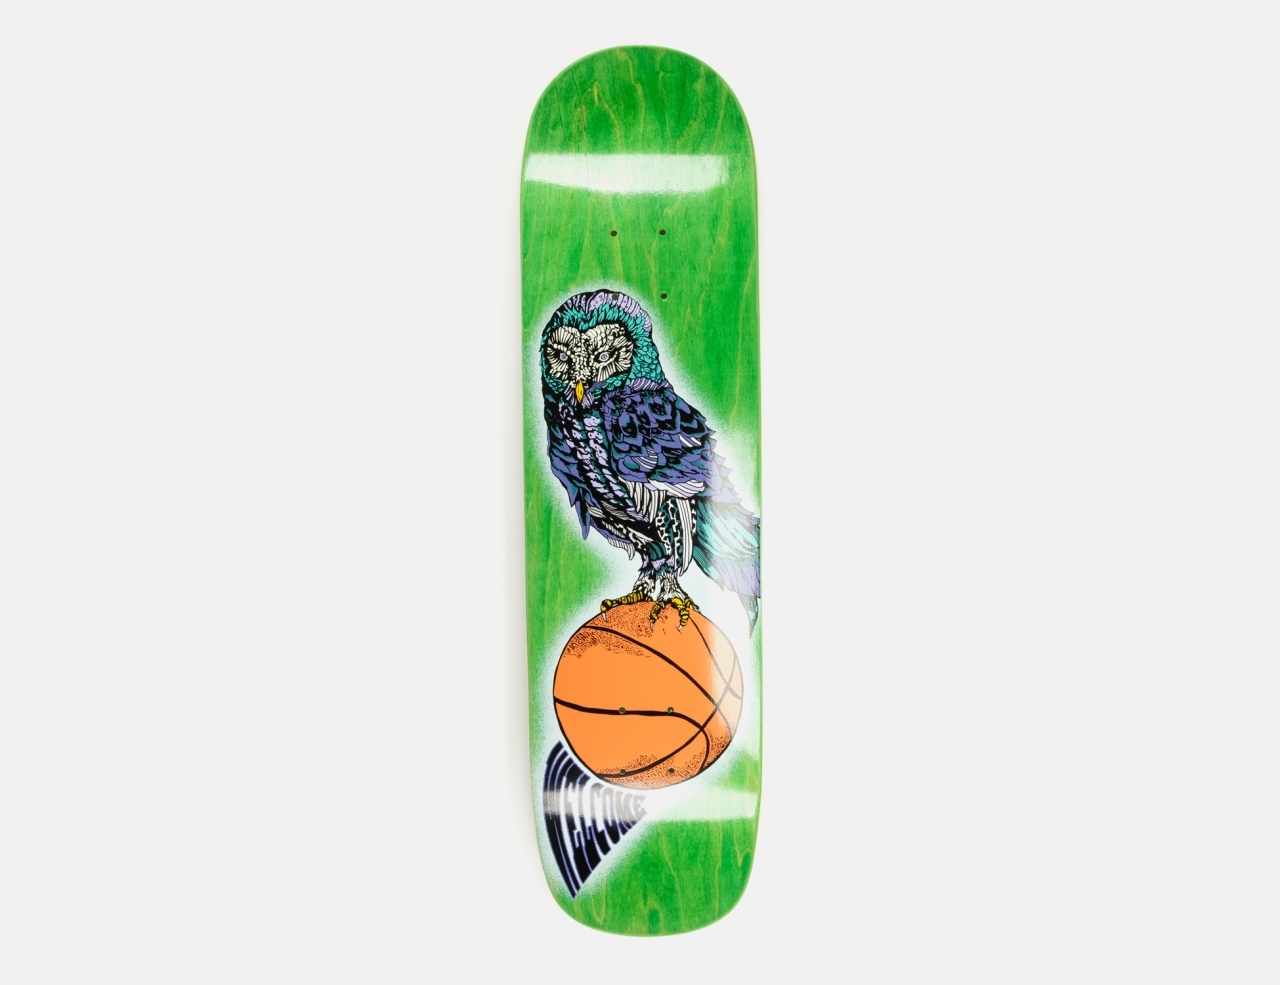 Welcome Hooter Shooter on Bunyip 8.0 Deck - Green